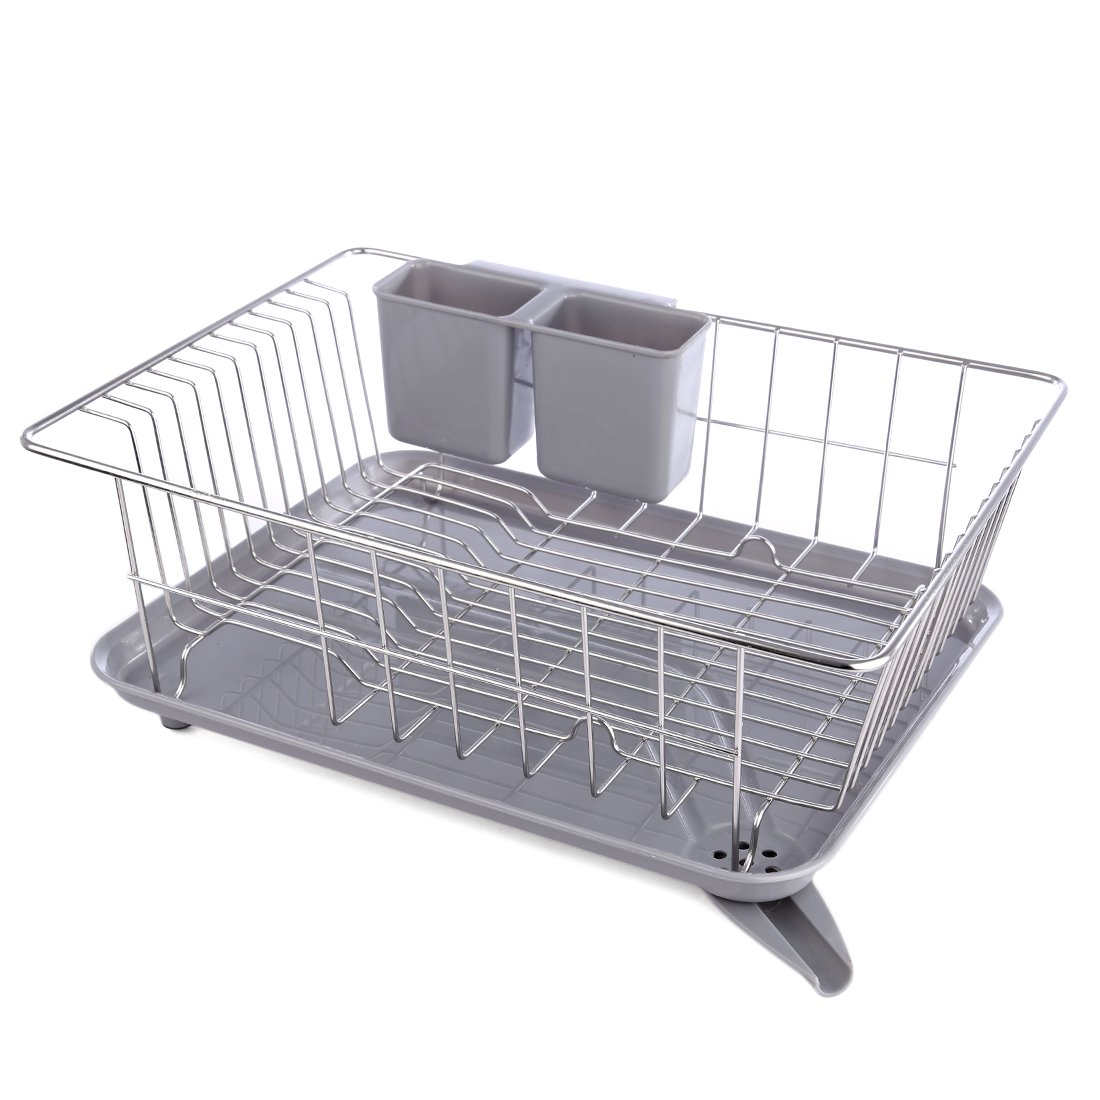 Plate Dish Drying Rack Fcoson Stainless Steel Drying Drainer Organizer Rack for Kitchen Cabinet